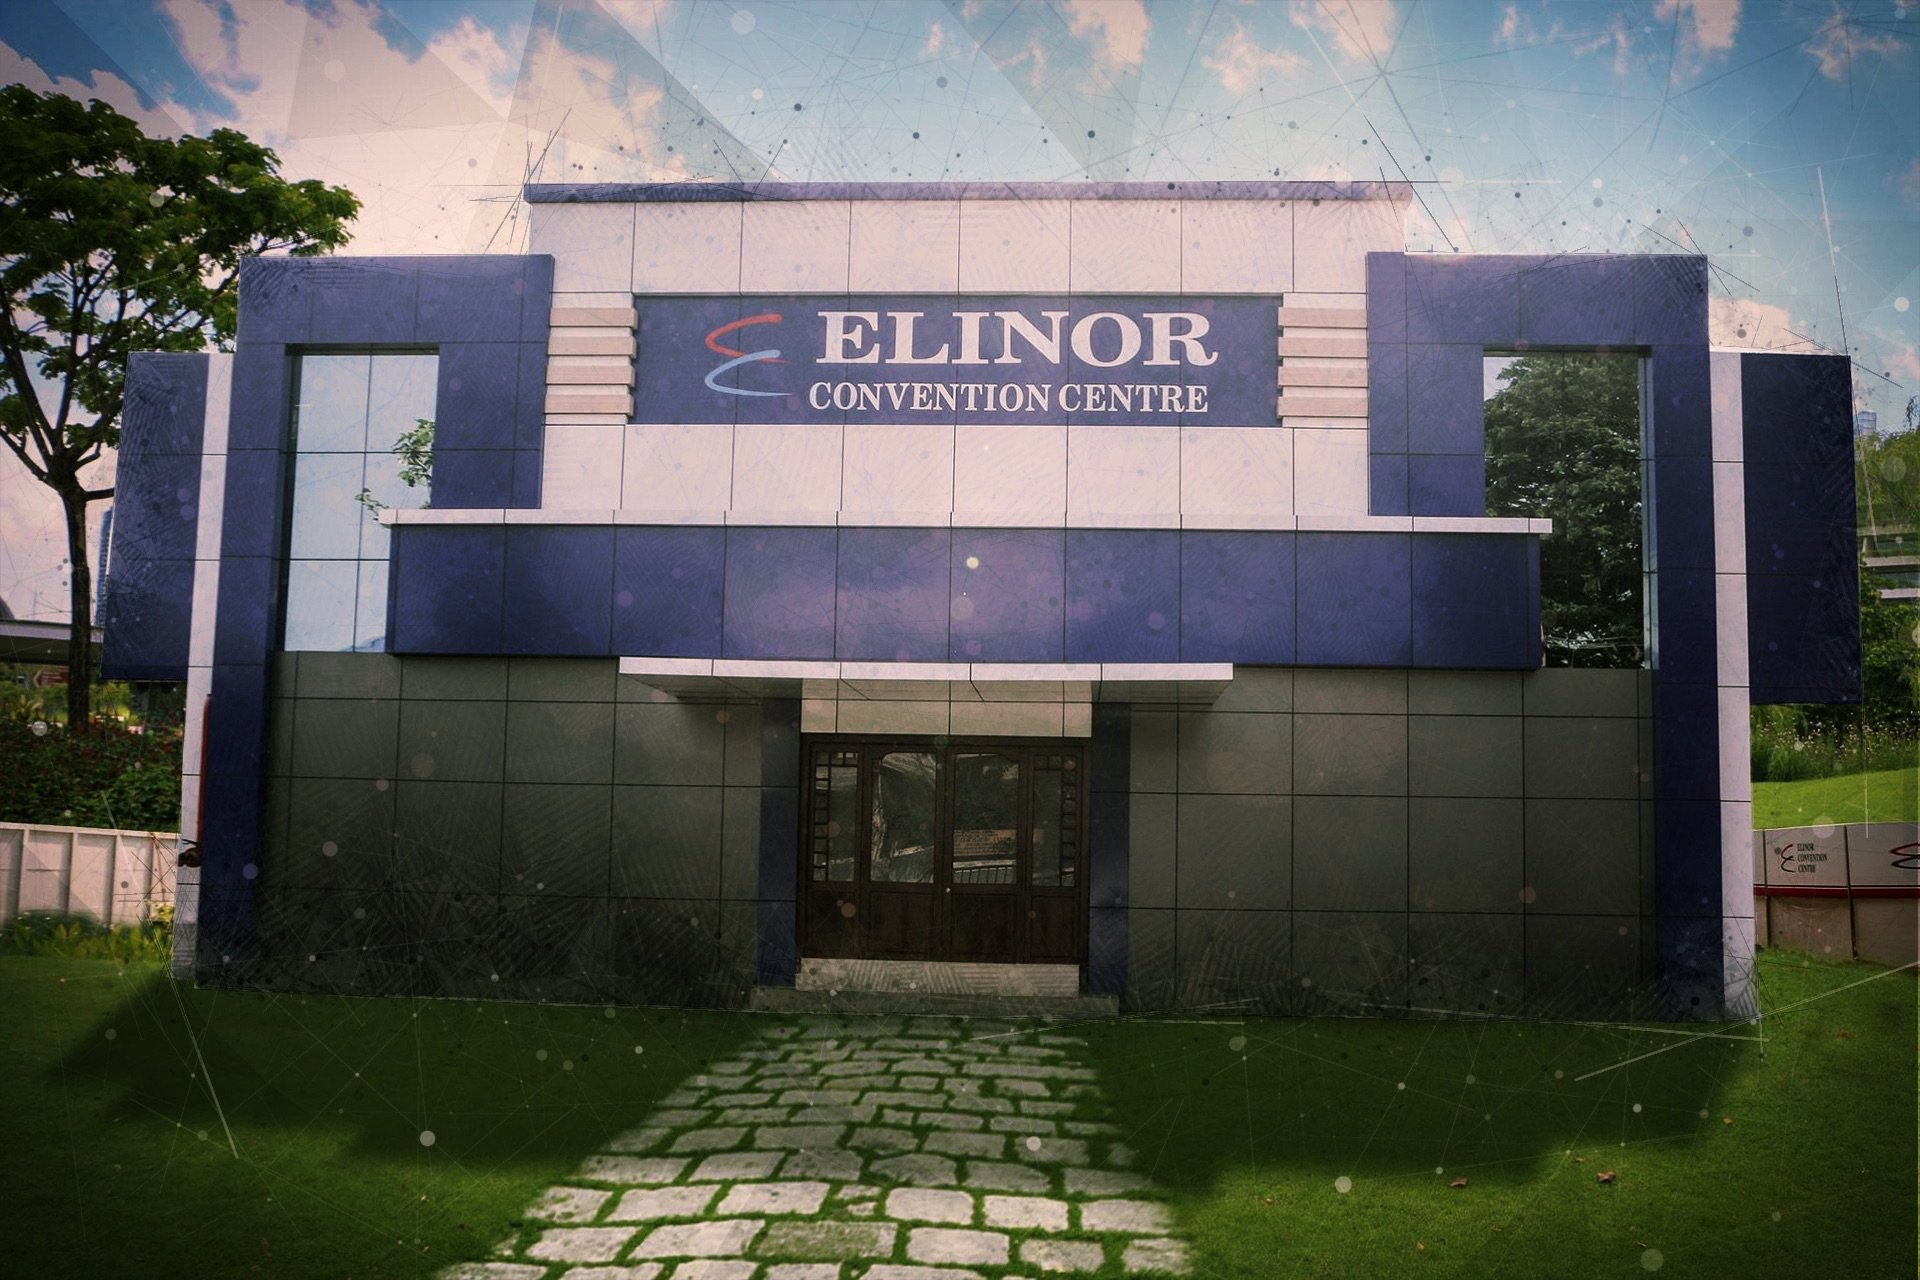 Ellinor-Convention-Centre-slide-01-1